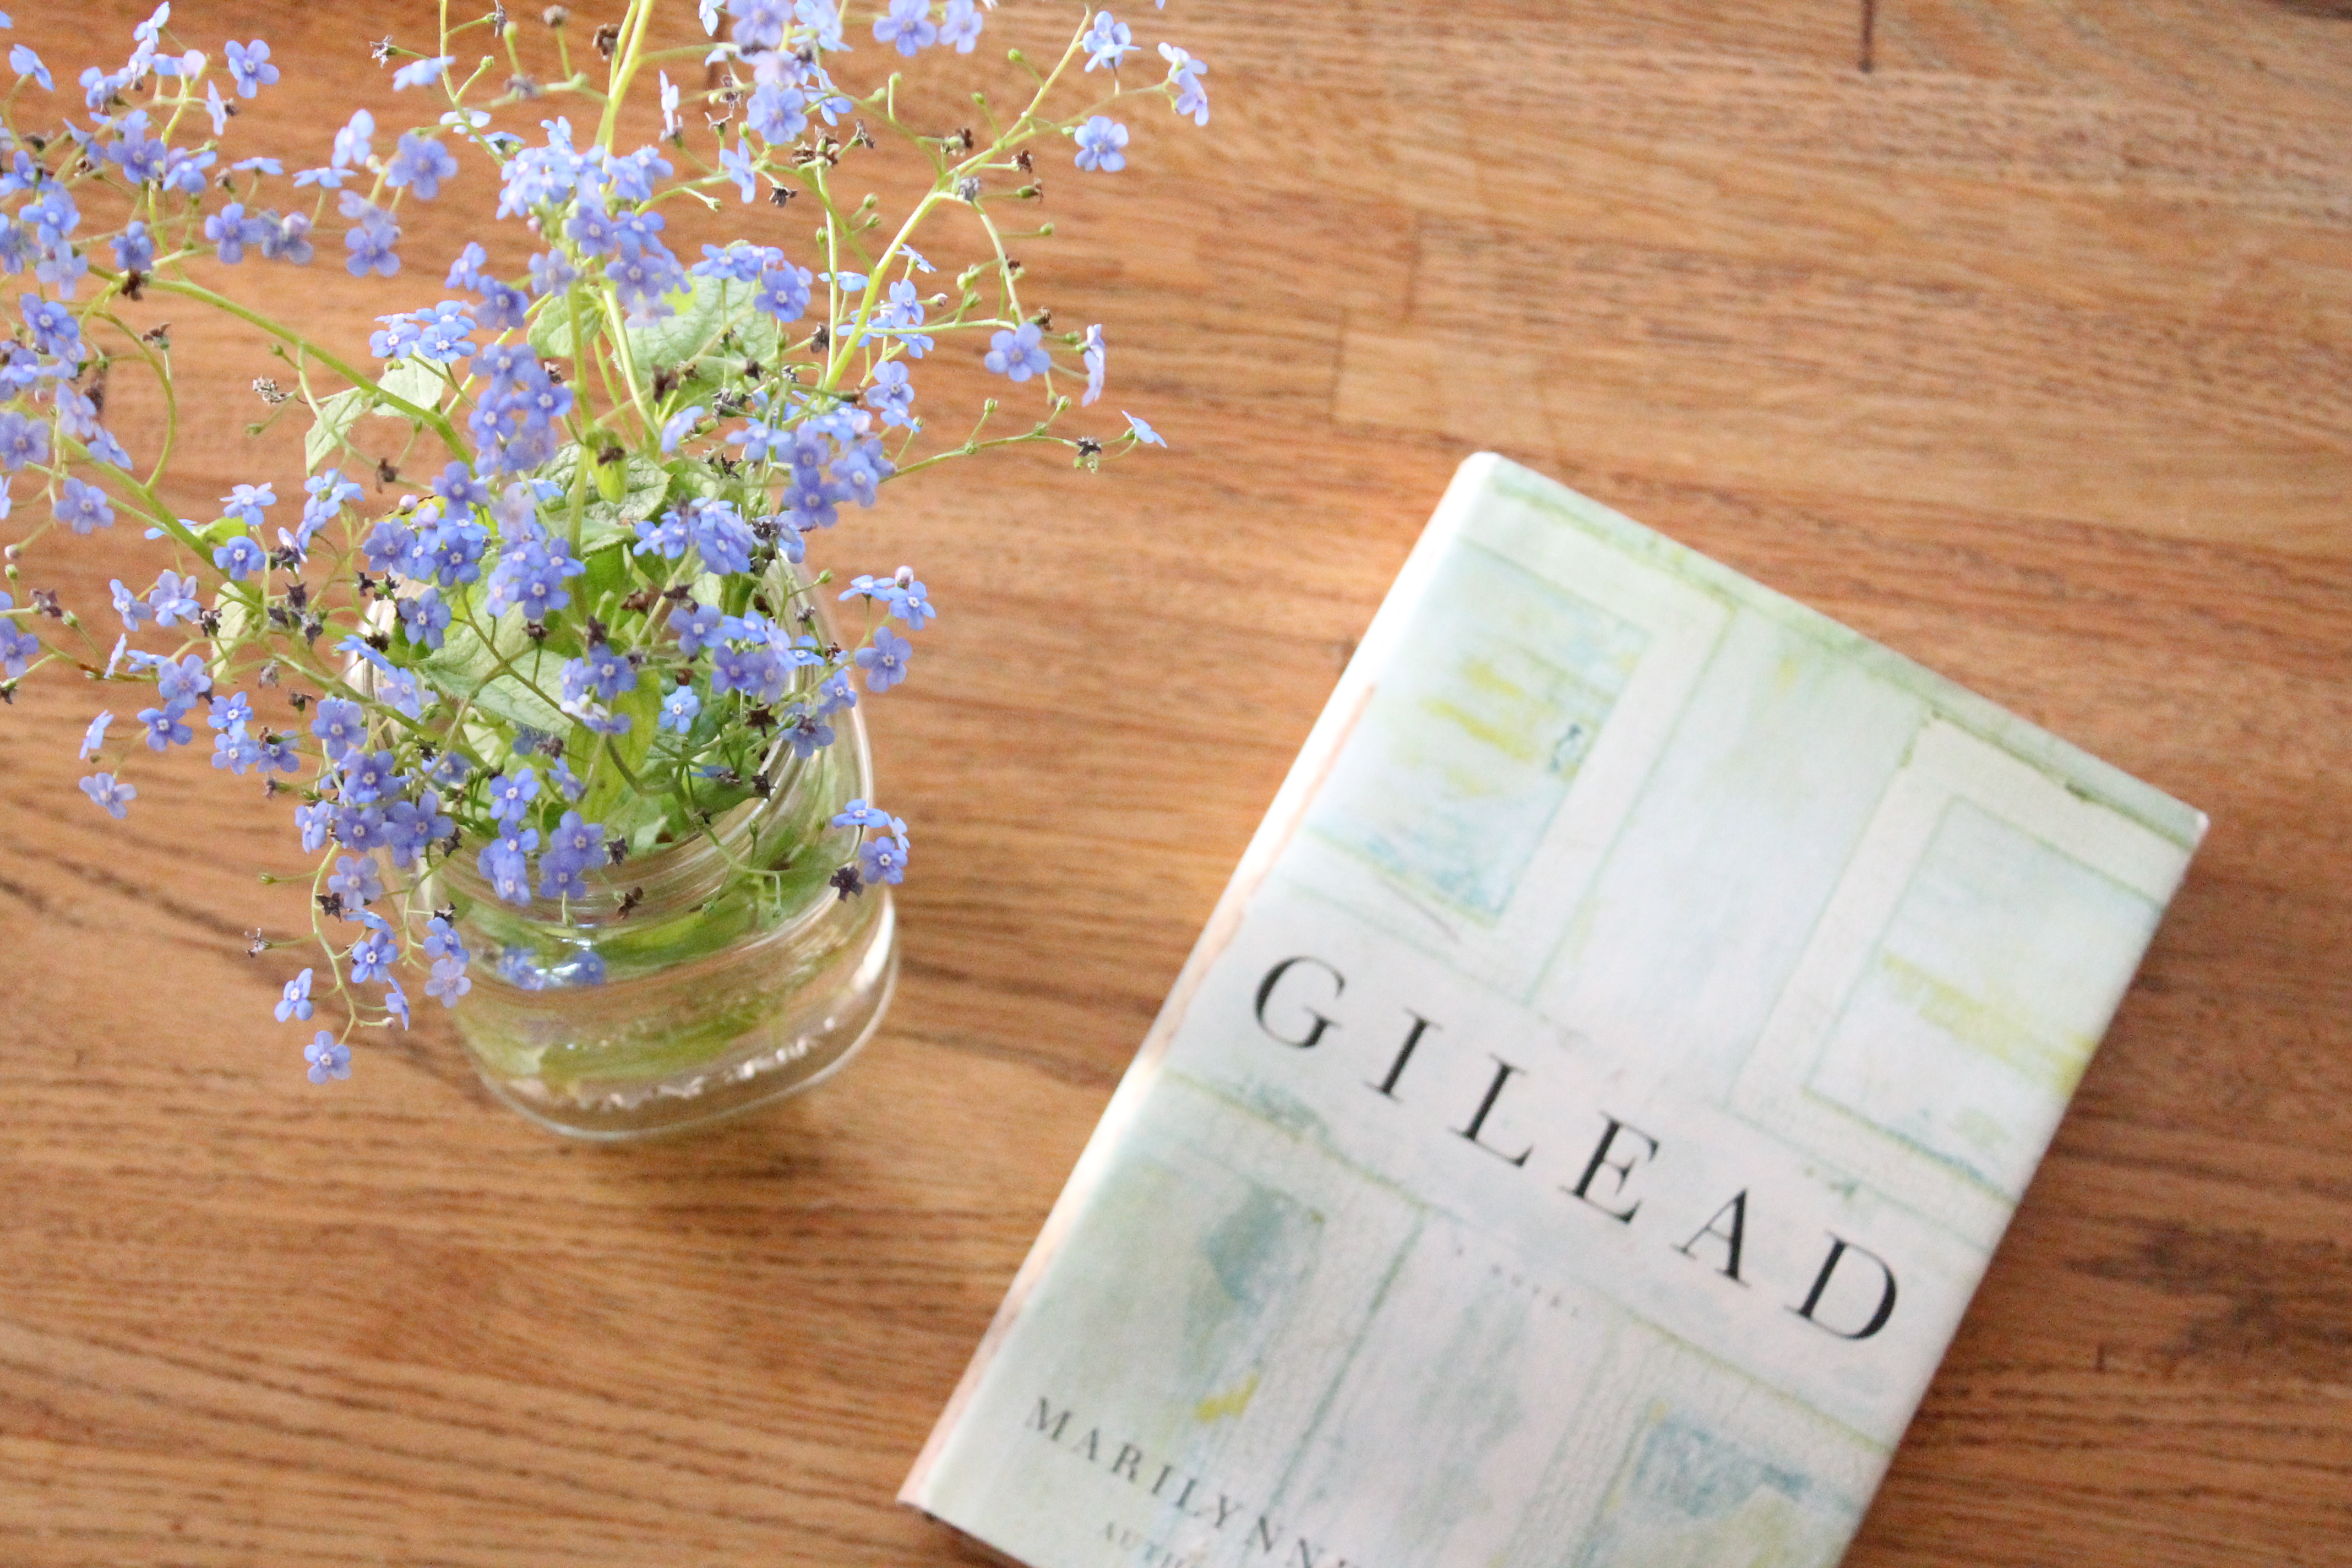 book review on home by marilynne A companion volume to robinson's luminous, pulitzer-winning novel gilead (2004.